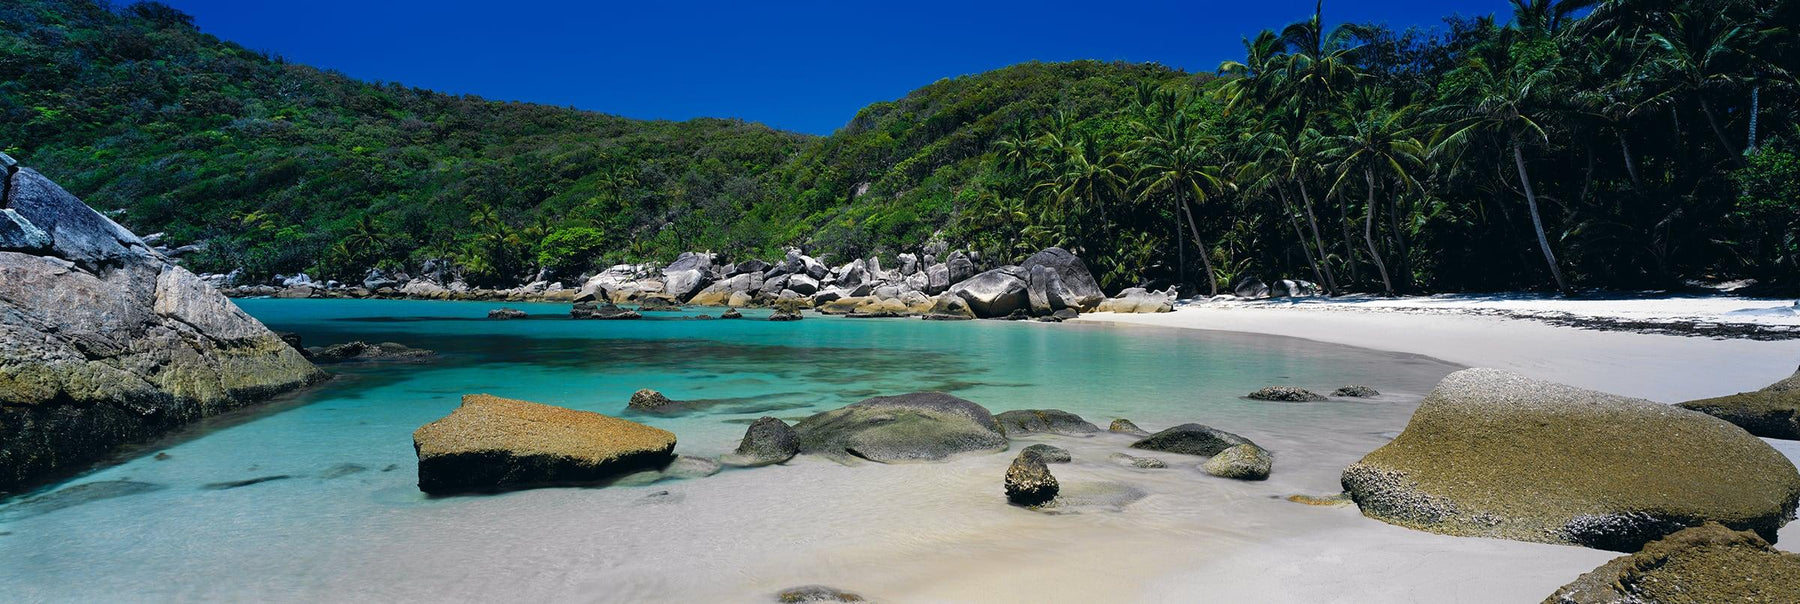 Lagoon filled with boulders along a palm tree filled beach at Bedarra Island Australia